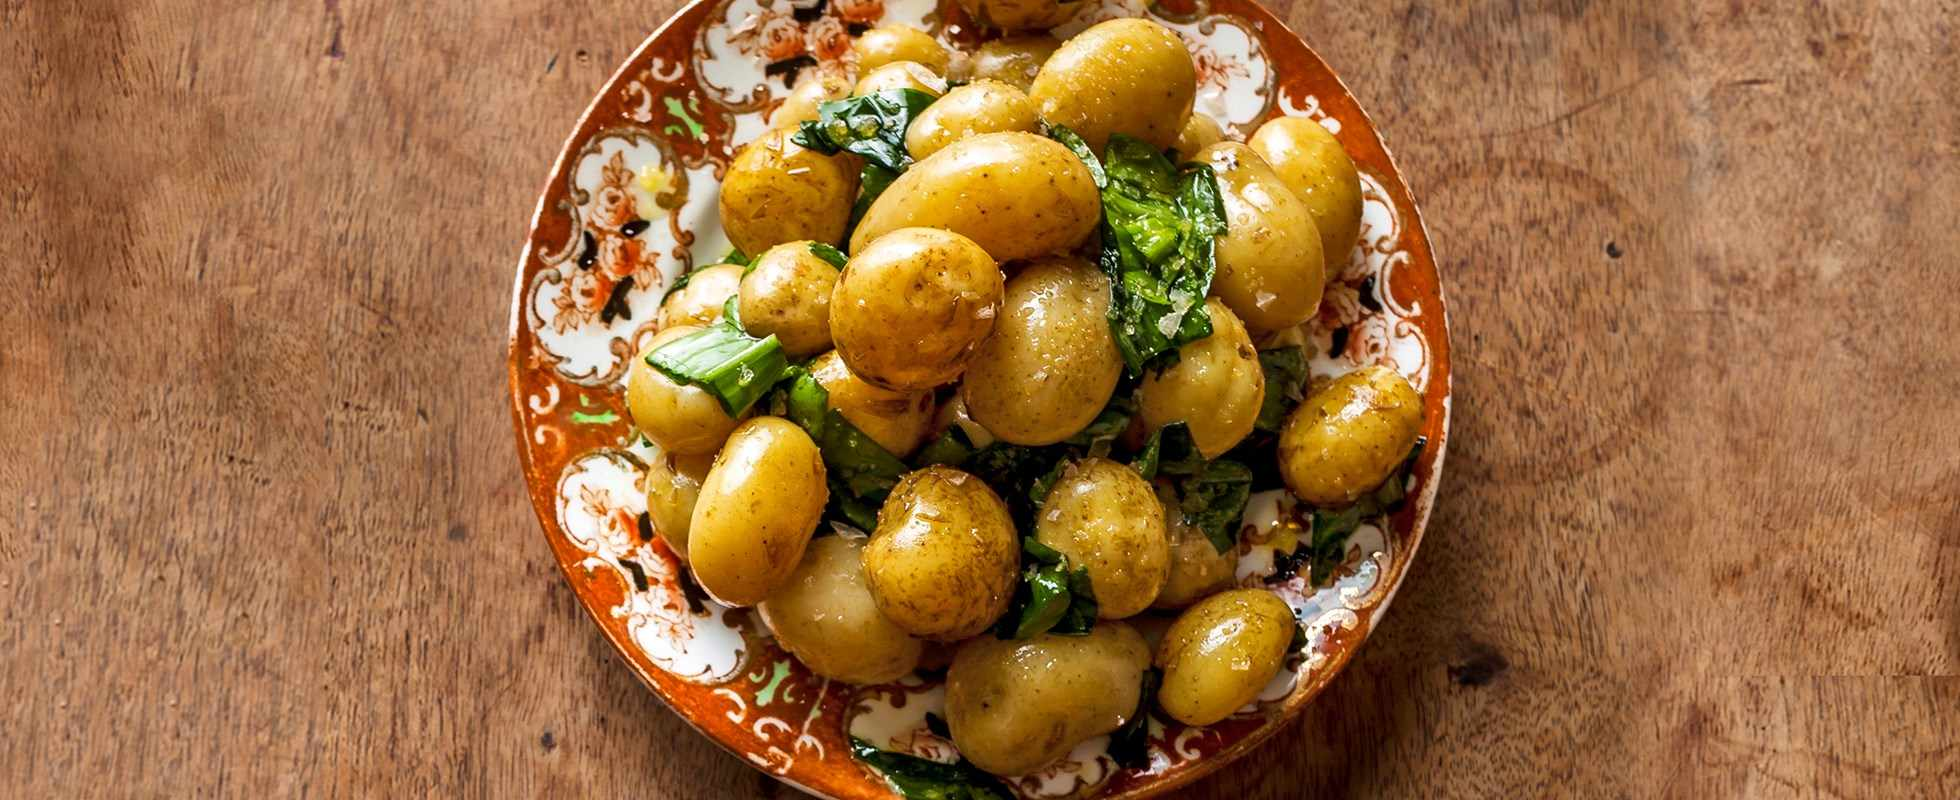 Jersey Royal potatoes with wild garlic